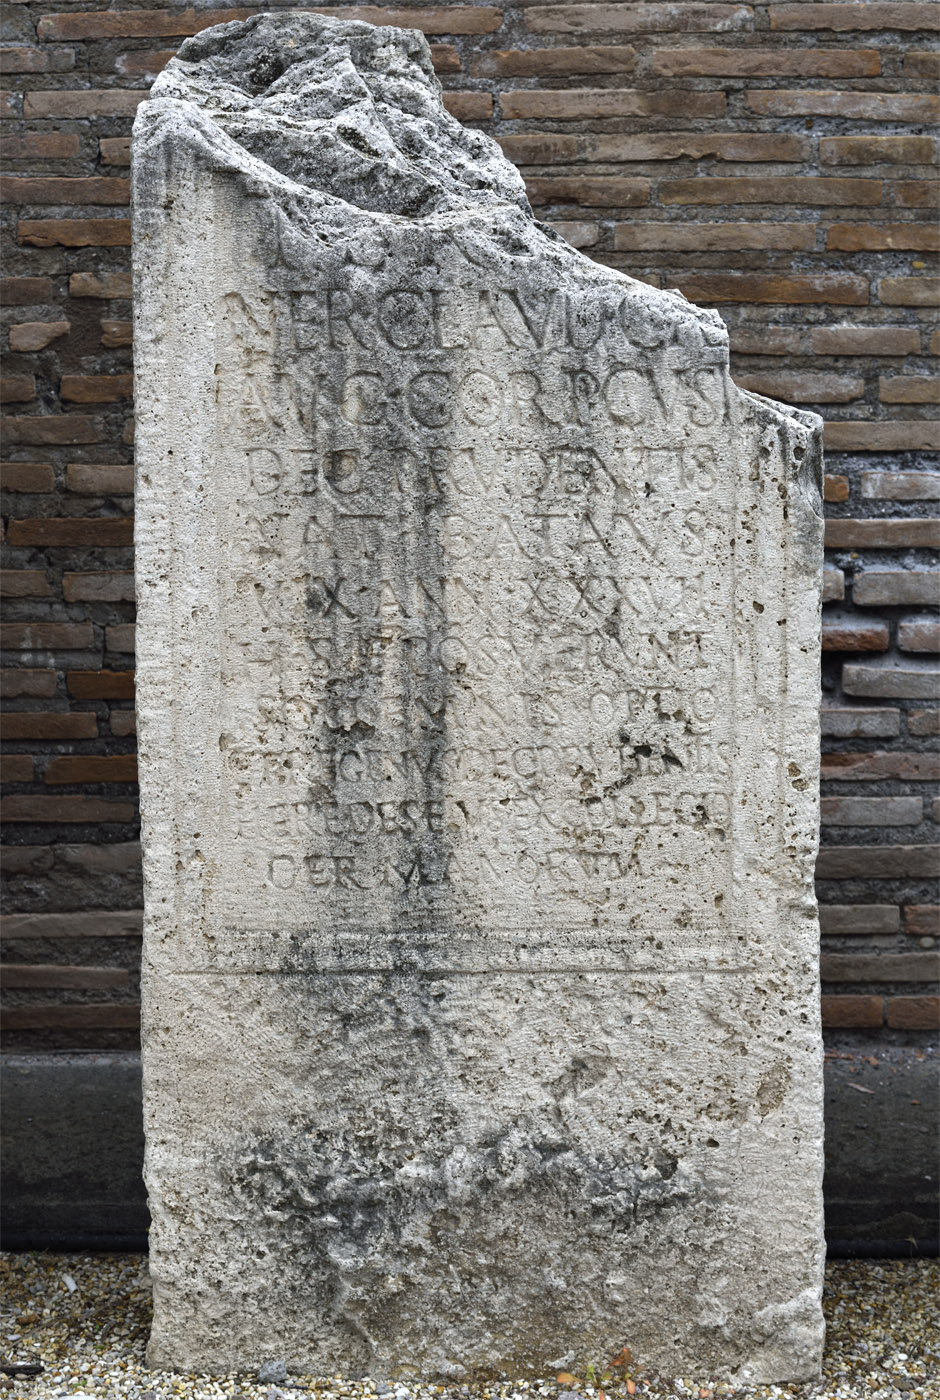 Funerary inscription of a bodyguard of Nero. AE 1952, 146. Travertine. 54—68 CE. Inv. No. 125662. Rome, Roman National Museum, Baths of Diocletian